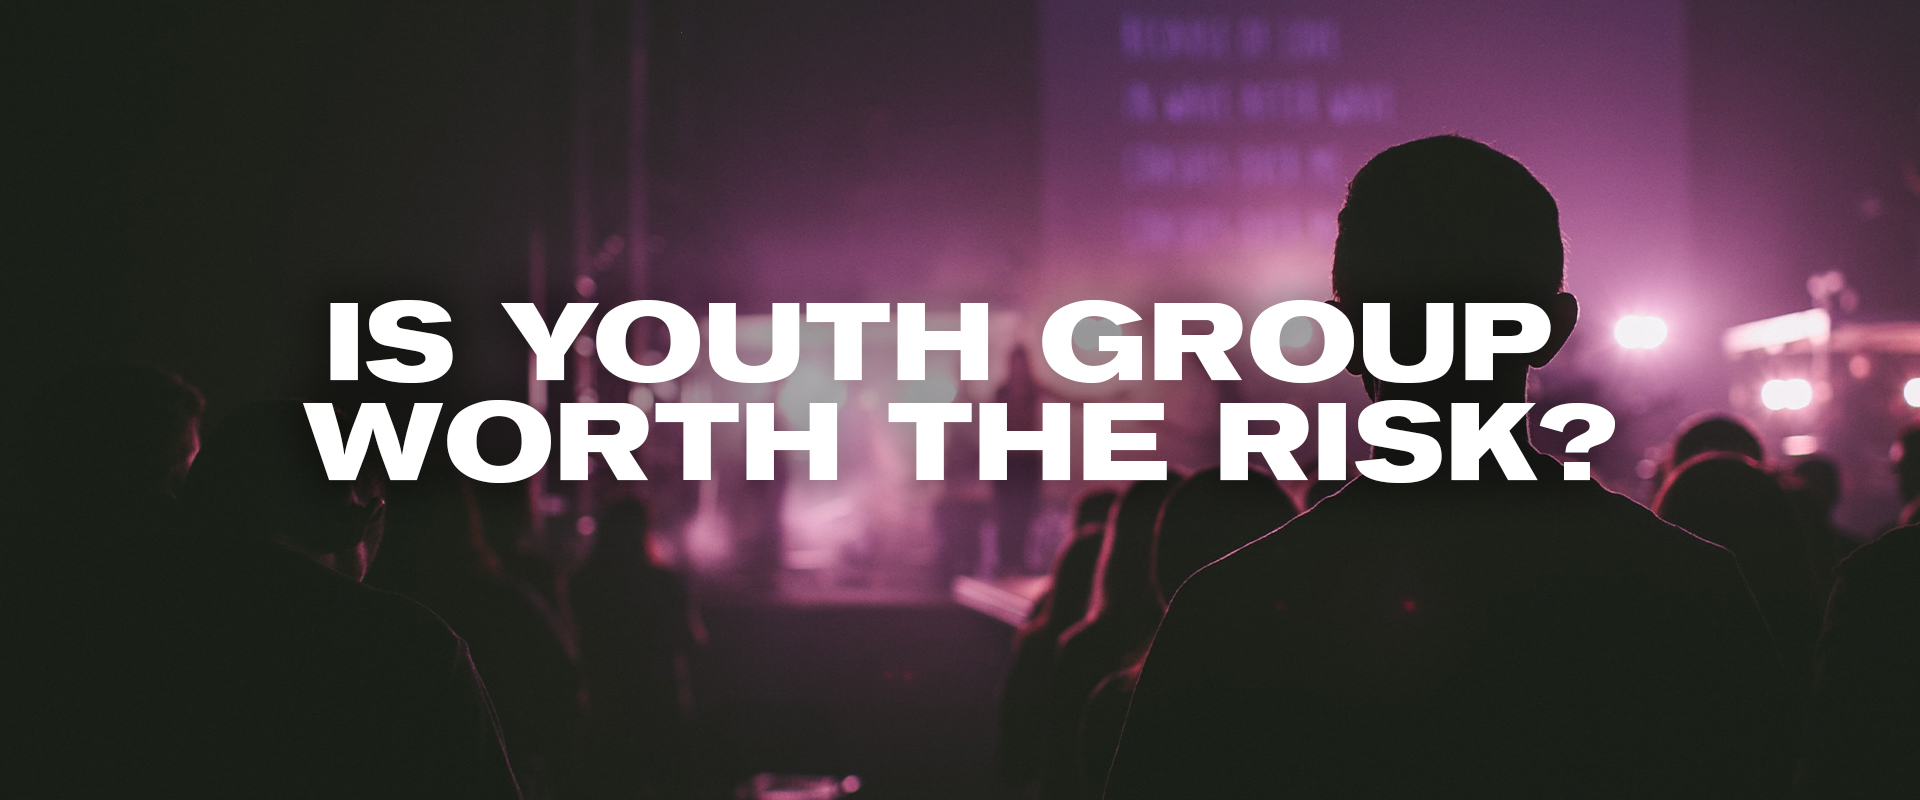 Is Youth Group Worth The Risk?